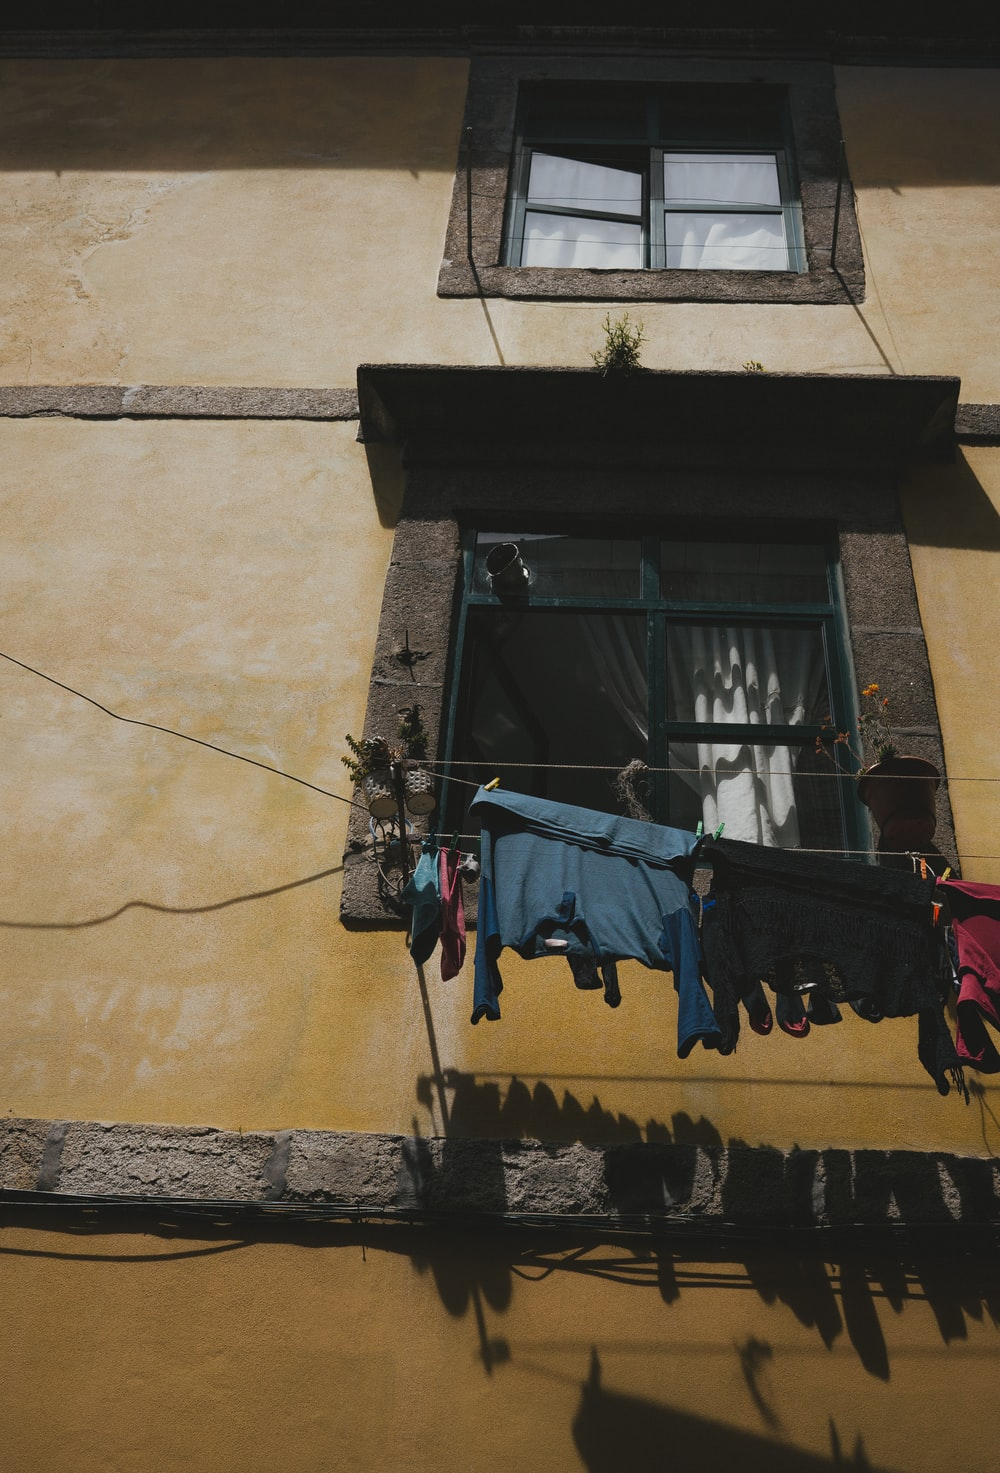 clothes hanged on string near window